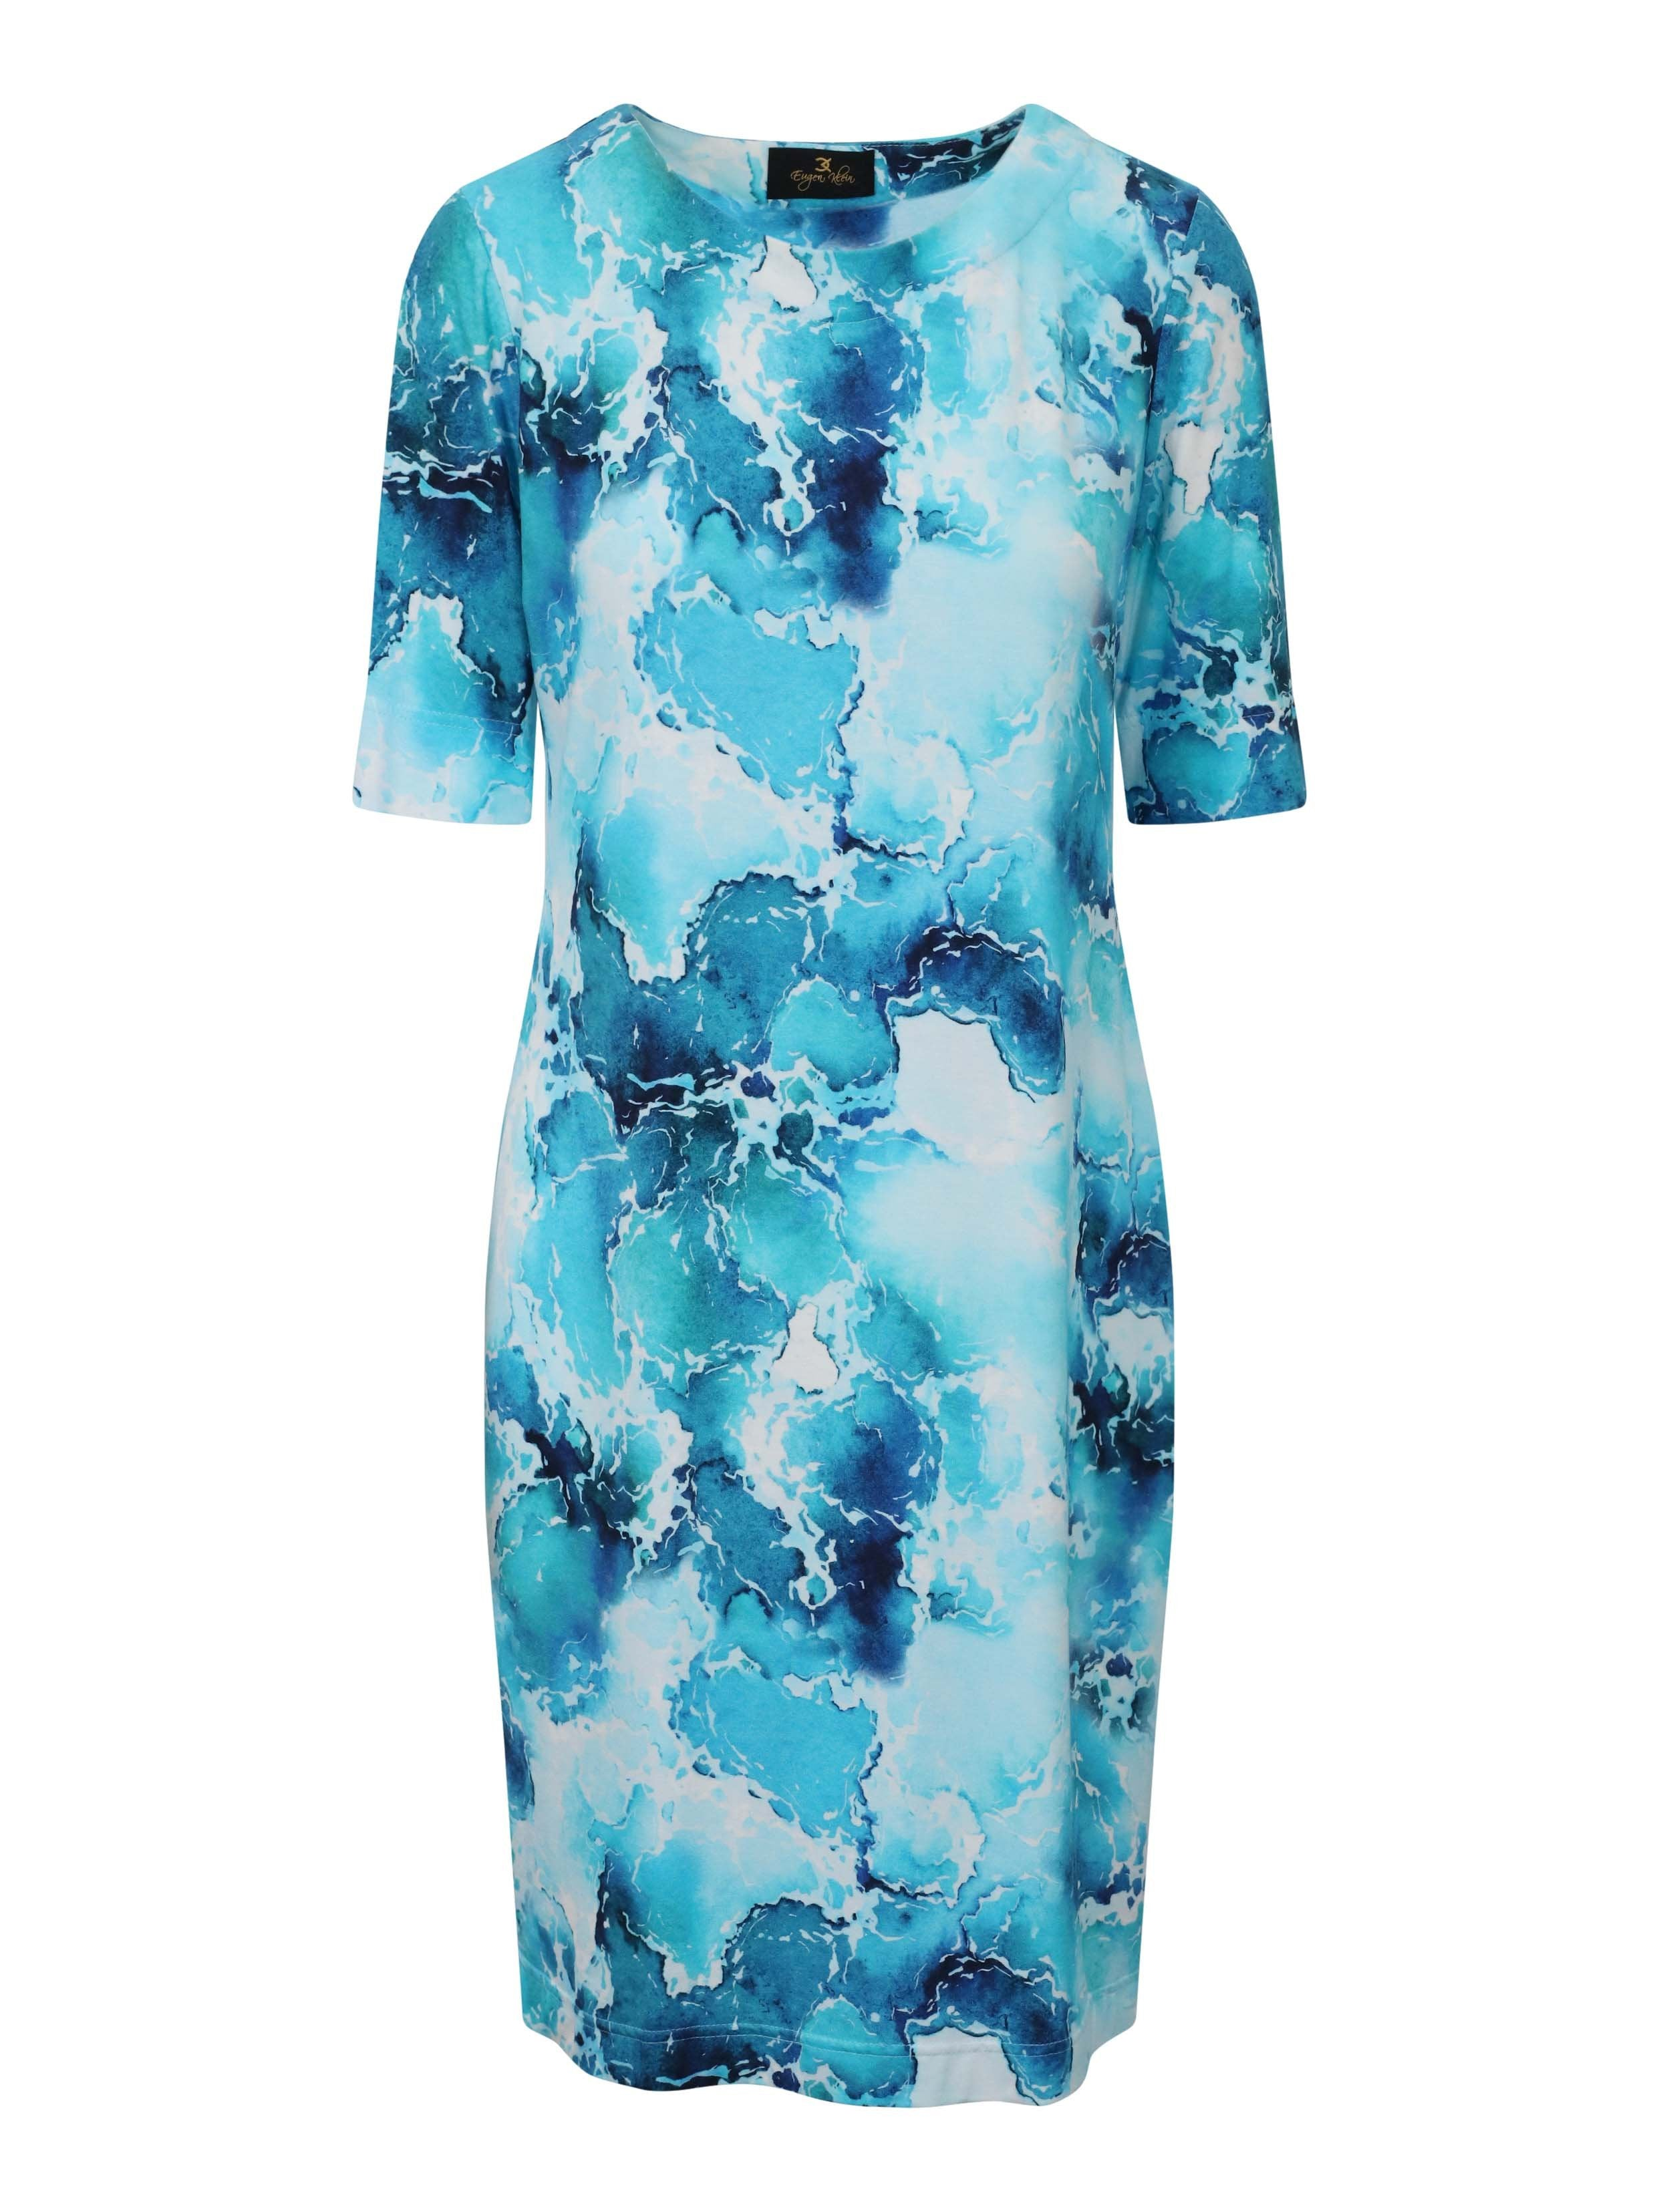 Eugen Klein White/Turq Printed Jersey Short Sleeve Dress